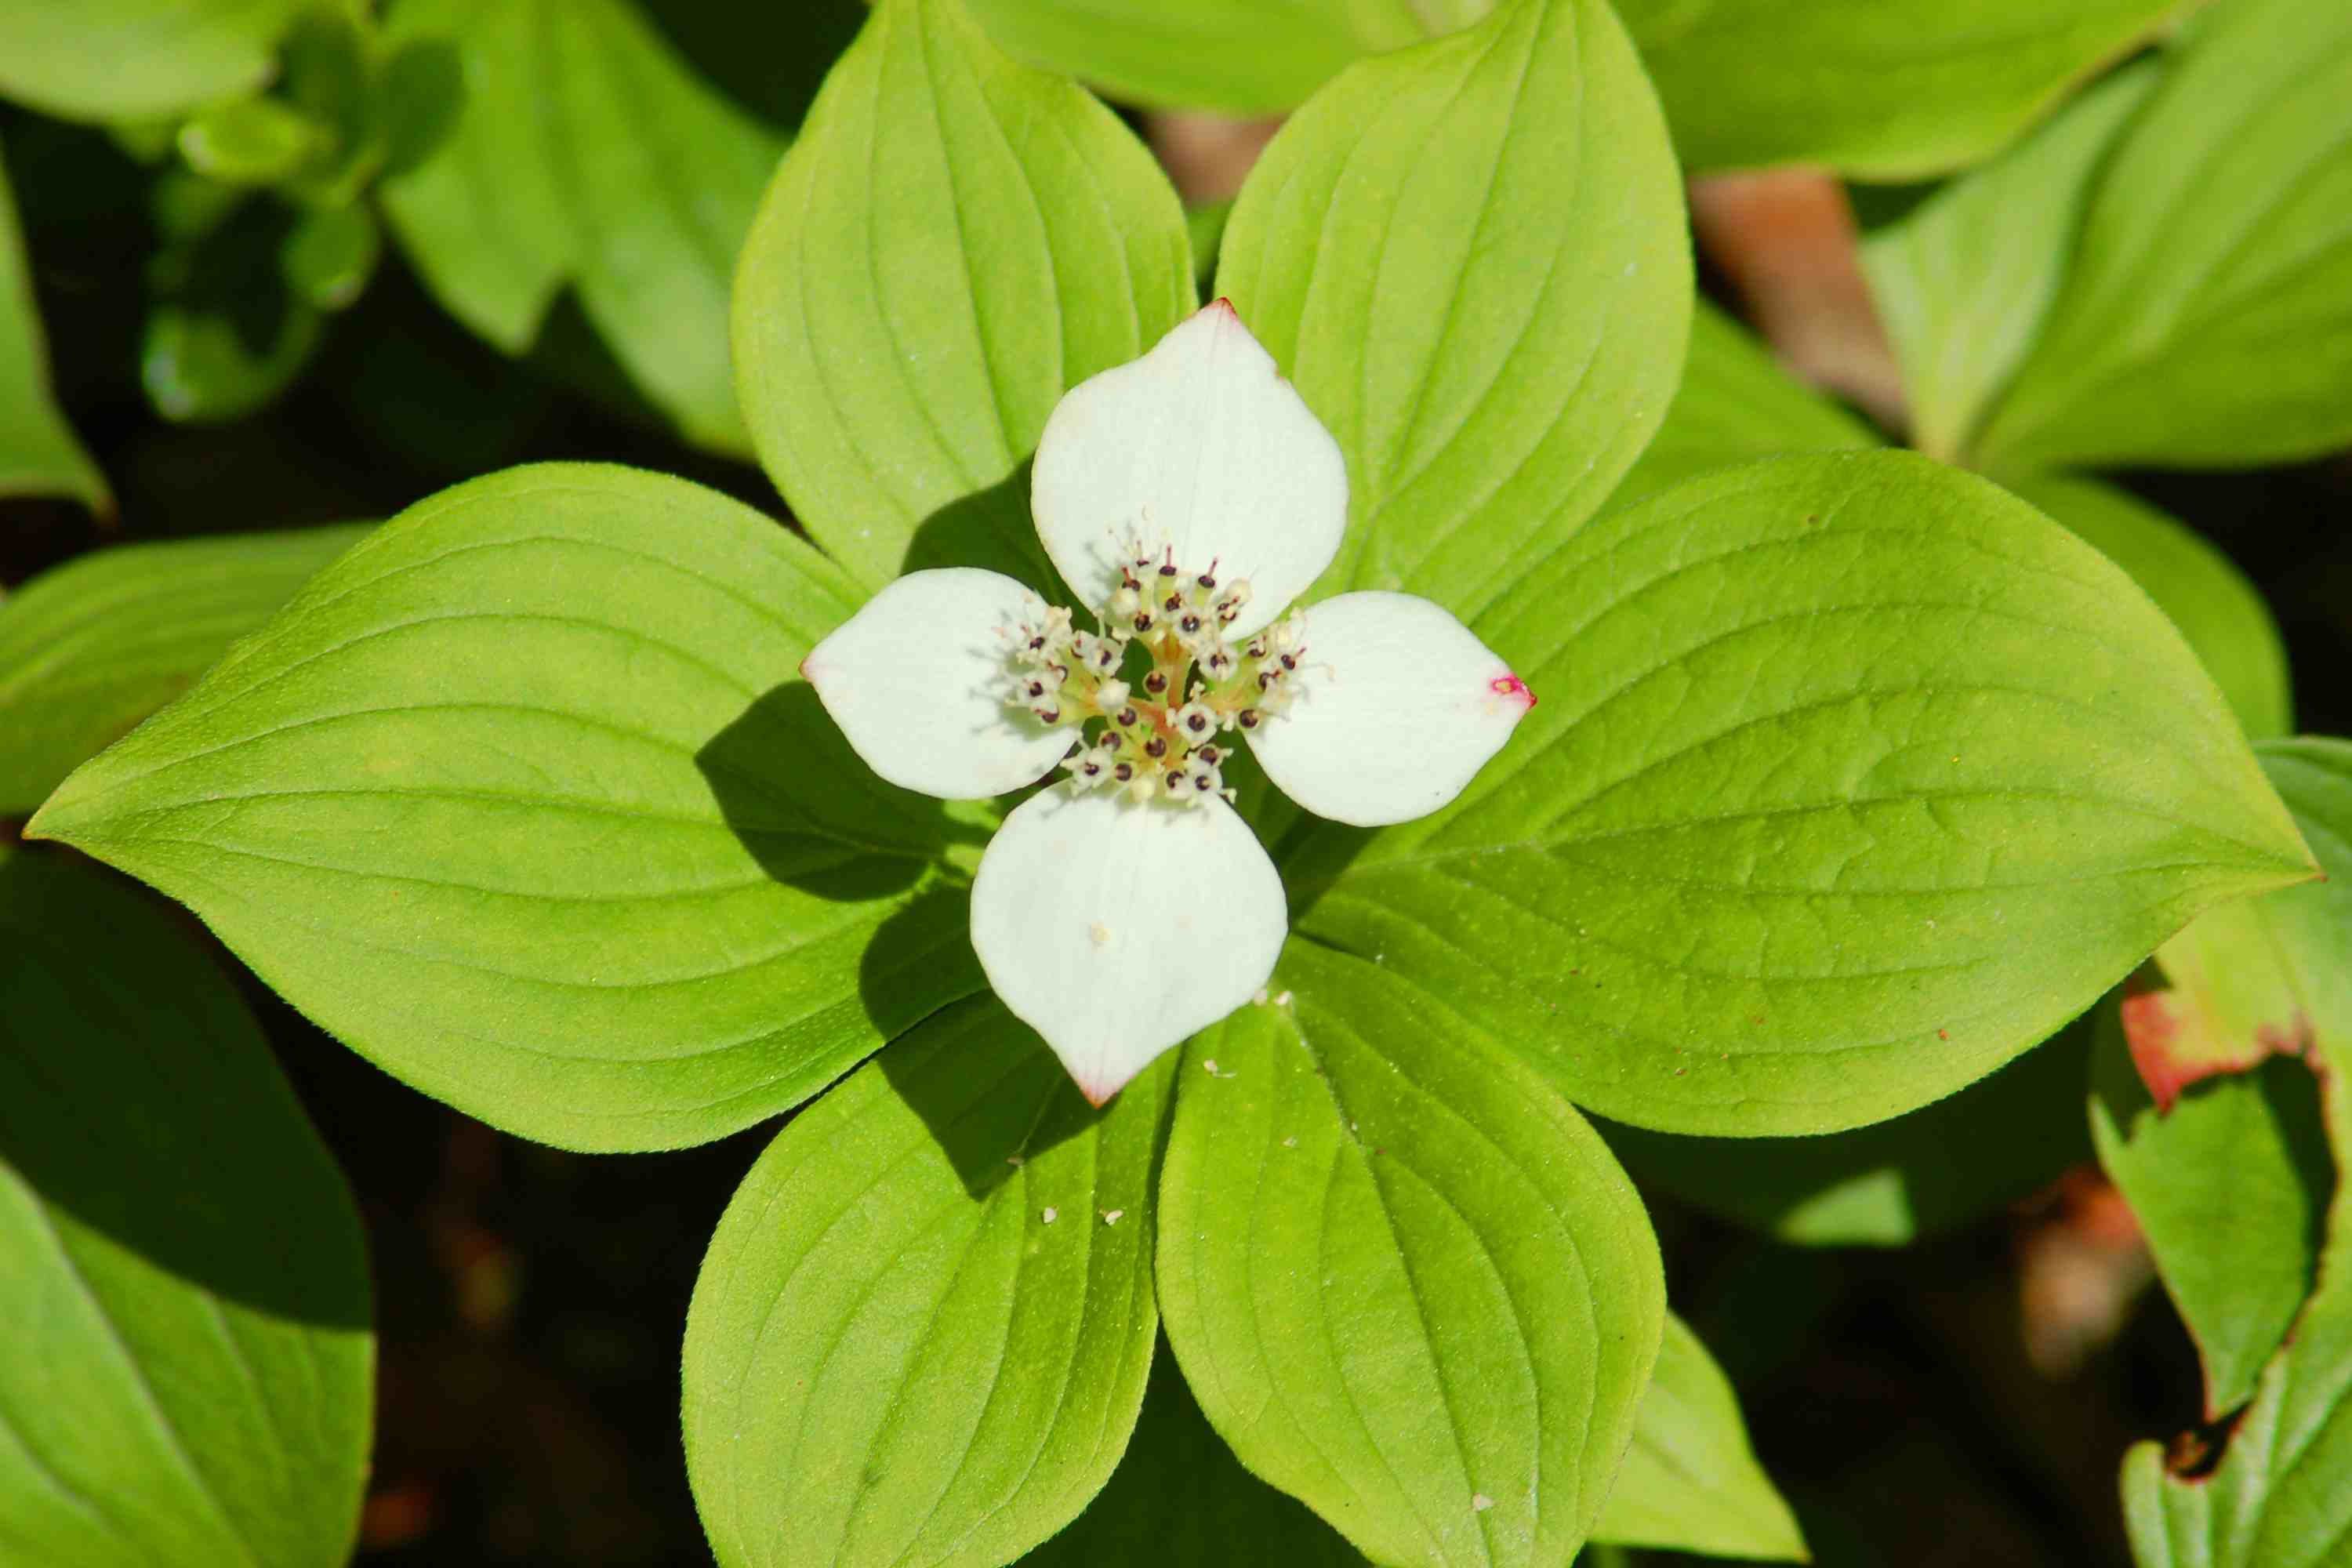 Bunchberry (a type of dogwood) is a short plant